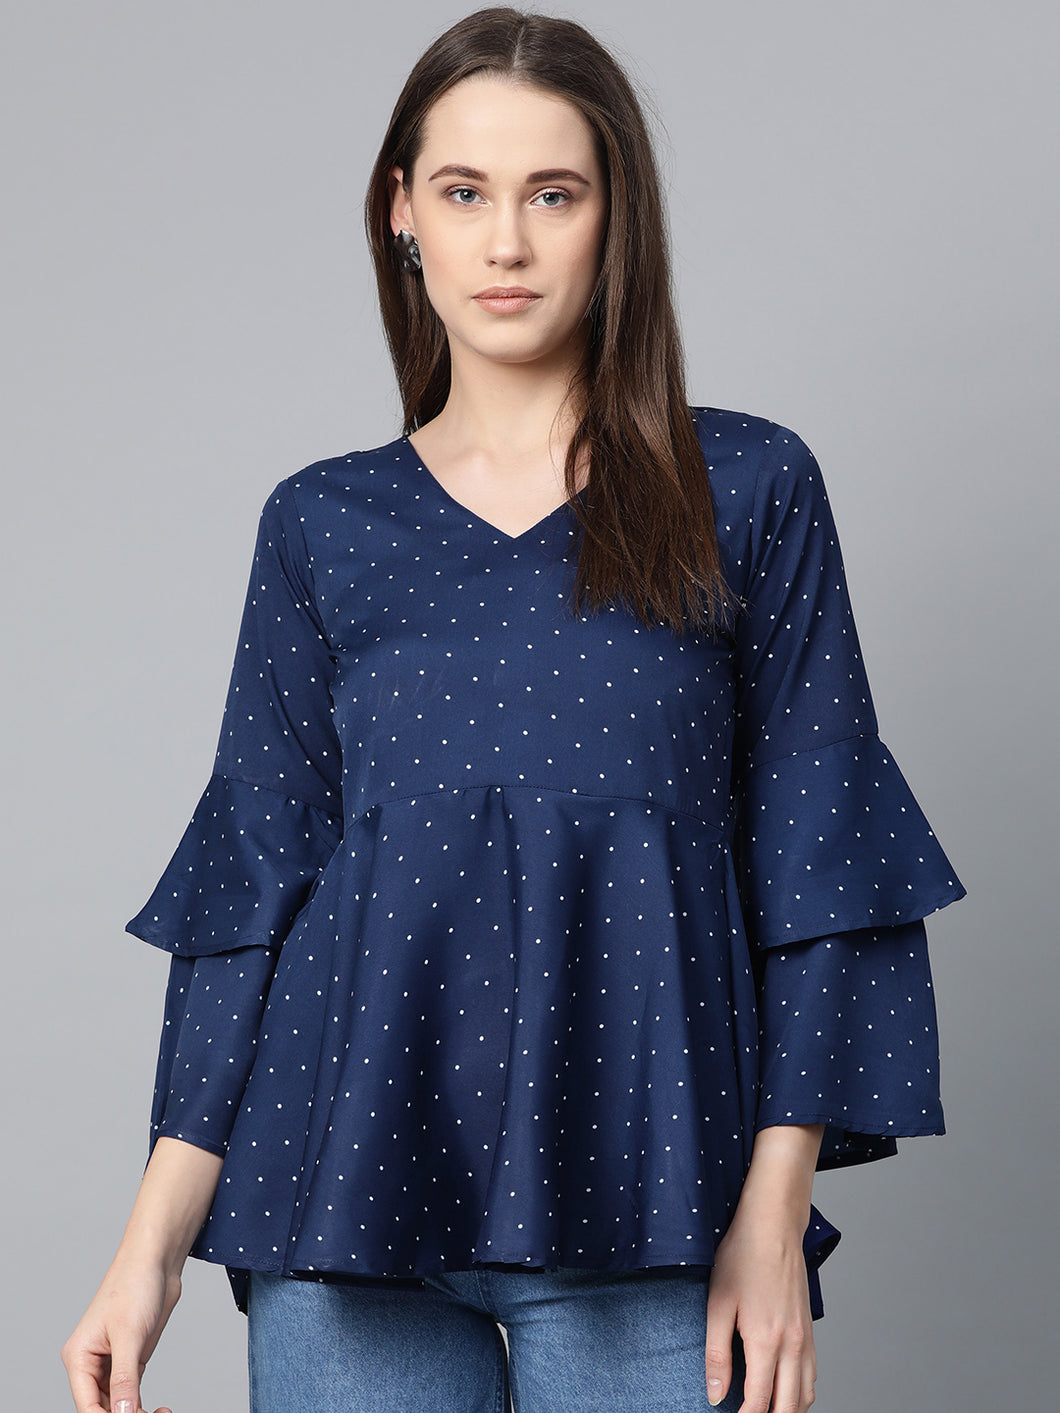 Jompers Women Navy Blue & White Printed A-Line Top